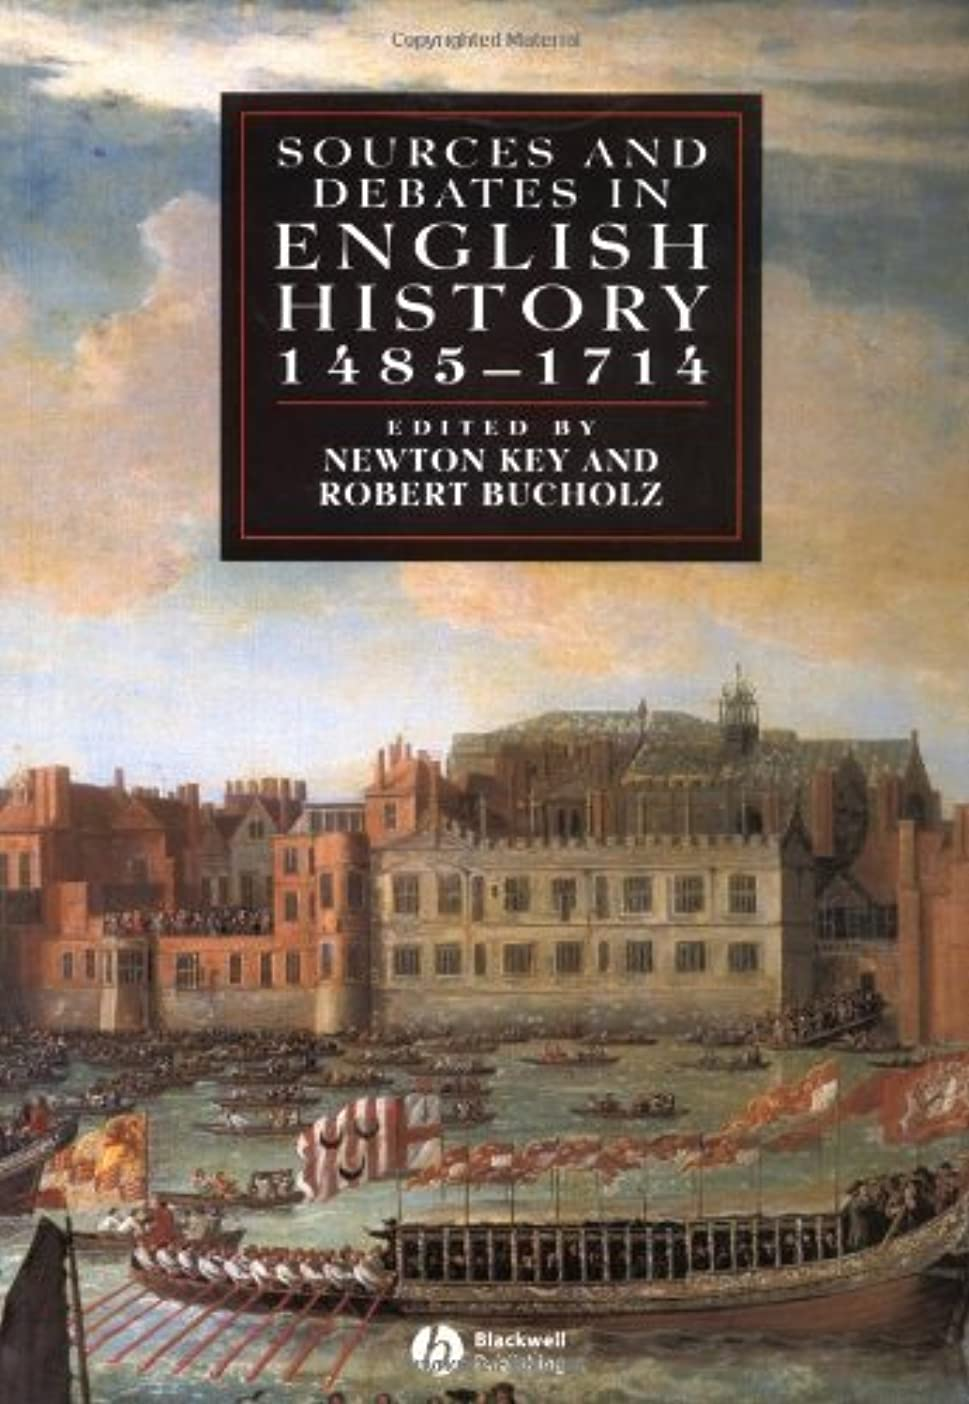 大宇宙検索オートマトンSources and Debates in English History, 1485 - 1714: 1485-1714 (English Edition)